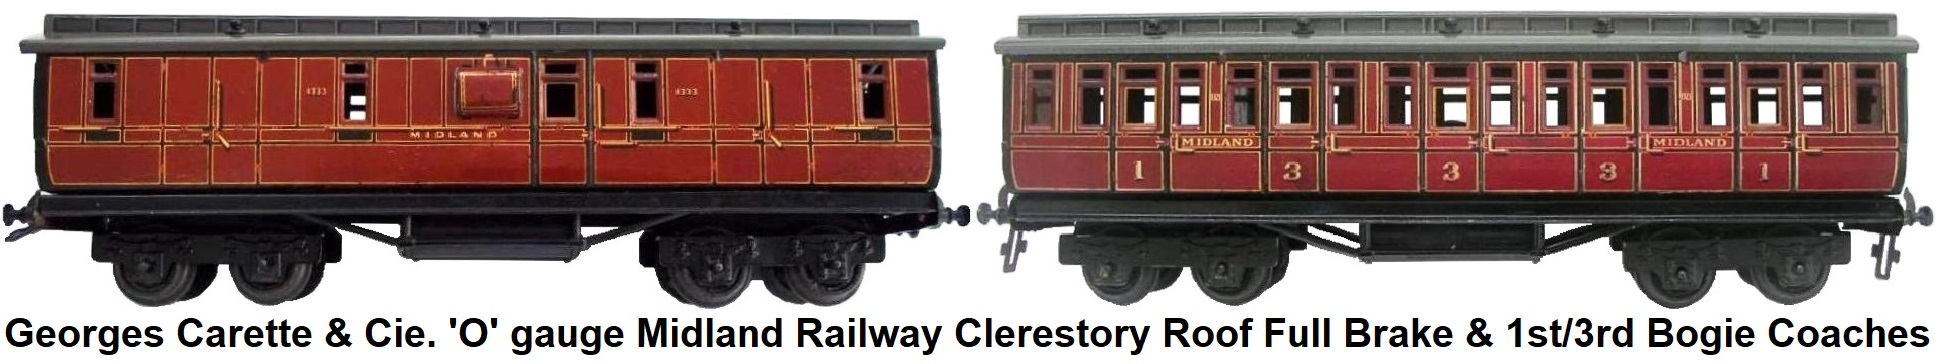 Carette 'O' gauge Midland Railway 30cm Clerestory Roof Full Brake Bogie Coach & 1st/3rd Clerestory Roof 30cm Bogie Coach